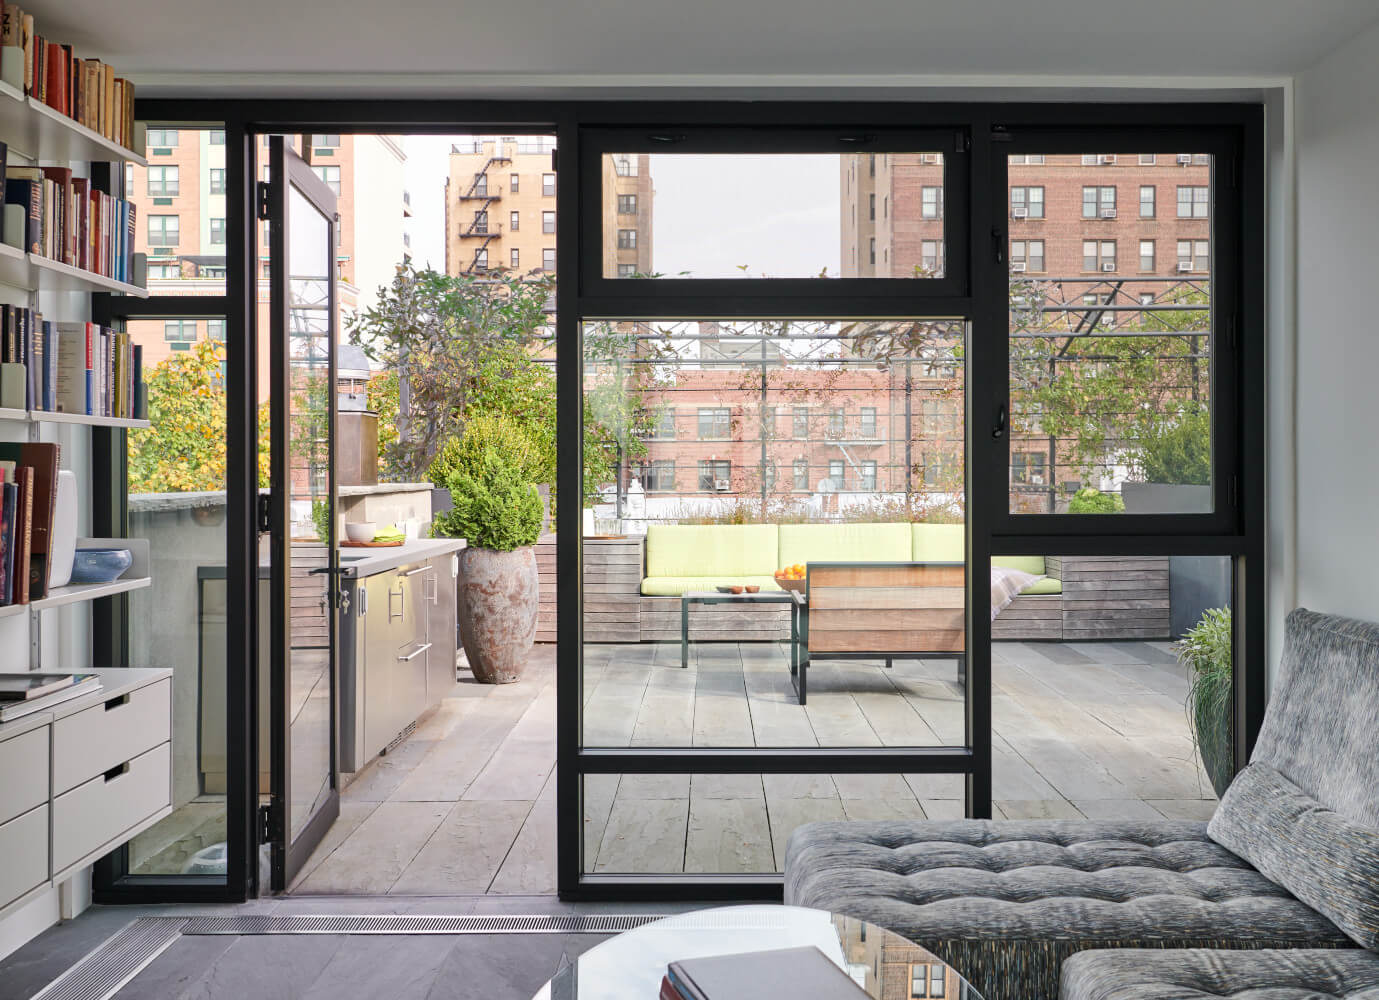 The rooftop sunroom of the Park Slope addition looks out through Mondrian mullions to a large roof deck.